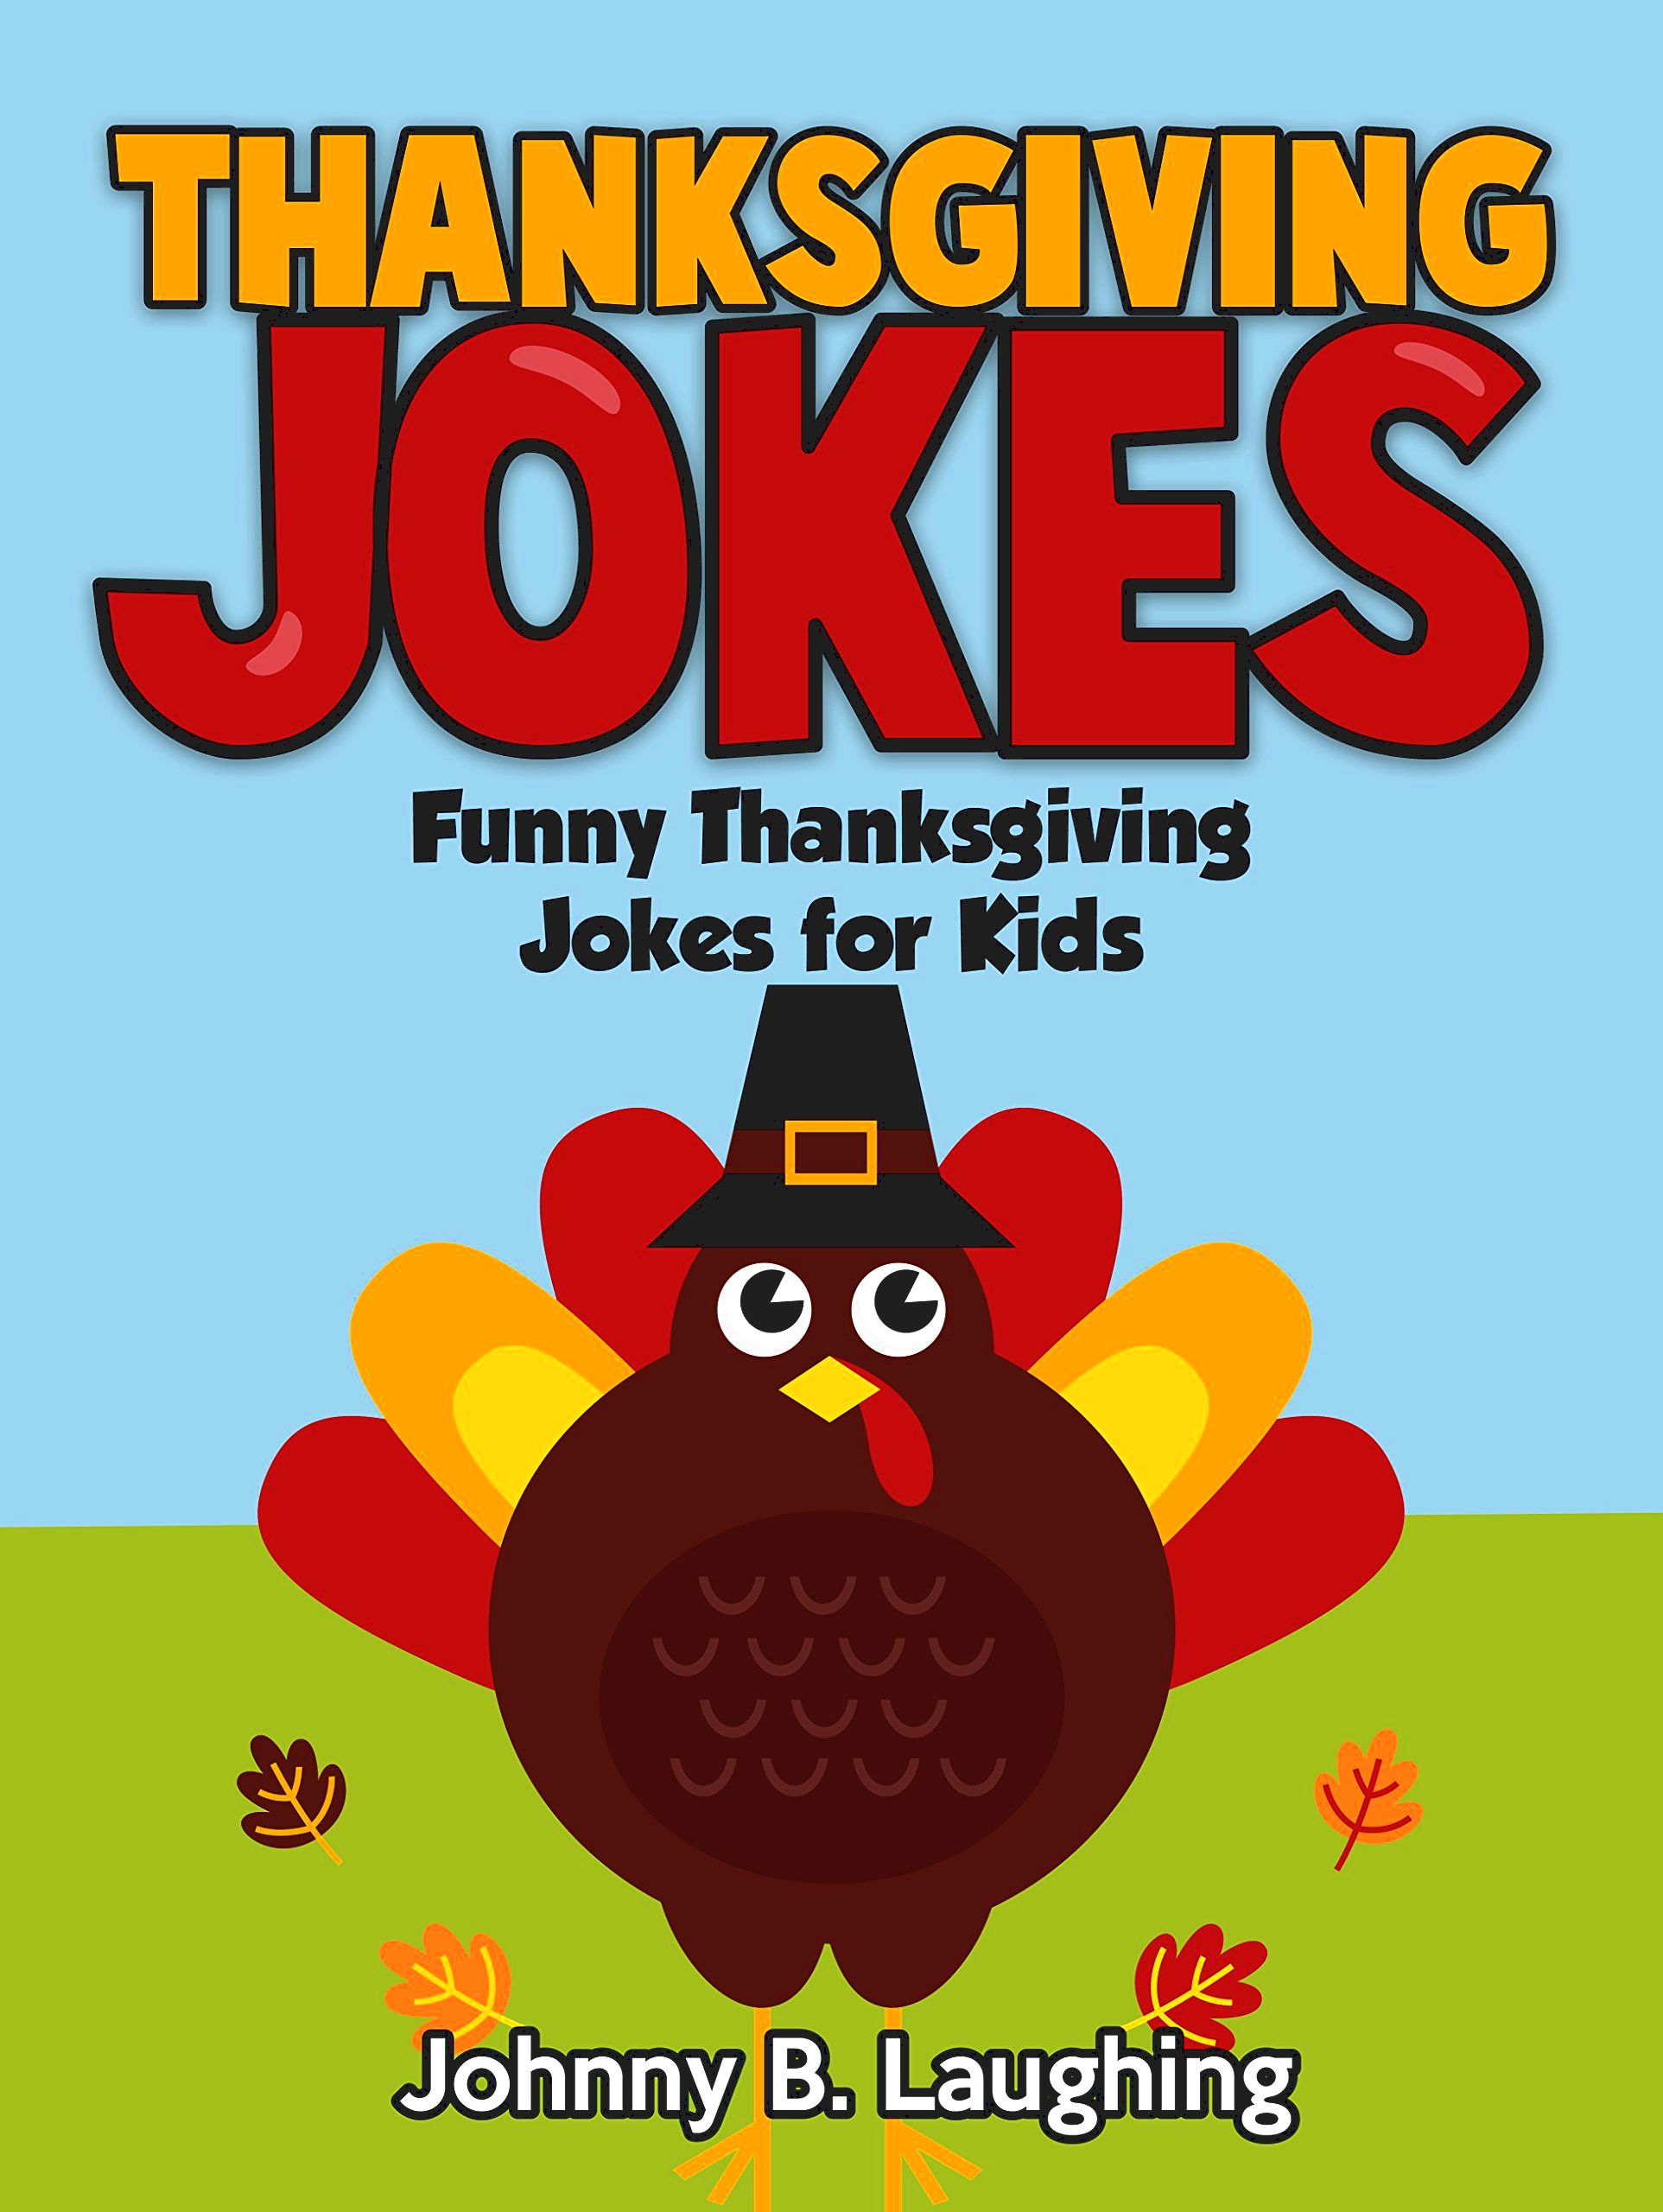 Uncategorized Thanksgiving Jokes And Riddles funny thanksgiving jokes for kids and adults body liners knock exactly what does